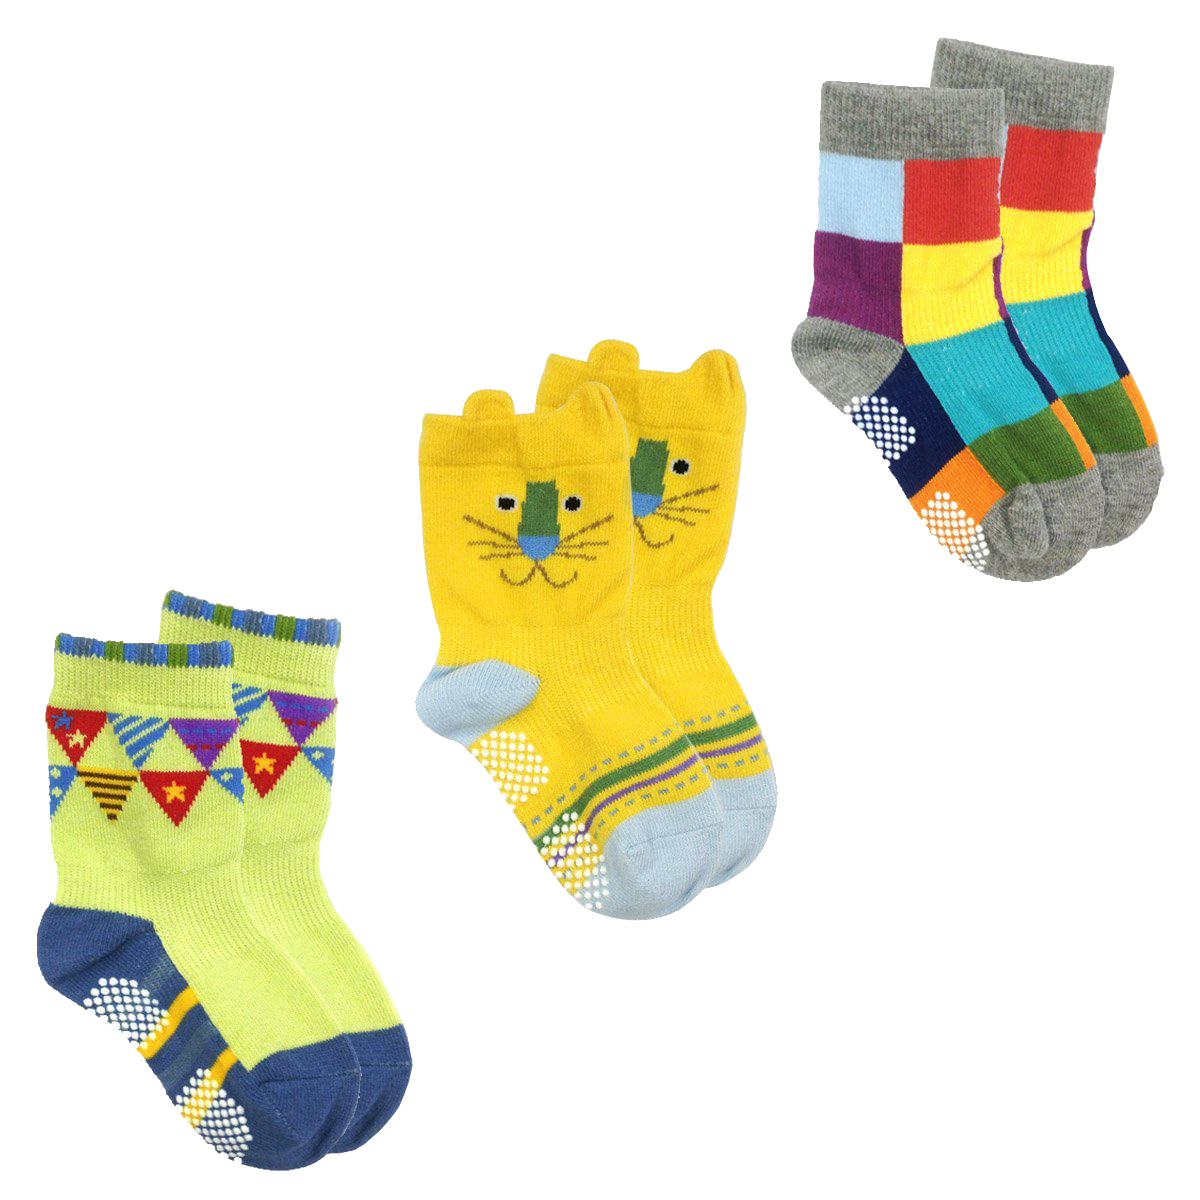 Peek A Boo Animal Non-Skid Toddler Socks - Cat Socks - Non Skid Shoe Socks Infant Baby Boy Anti Slip Cotton Socks With Grips For 12-24 Months - Set of 3